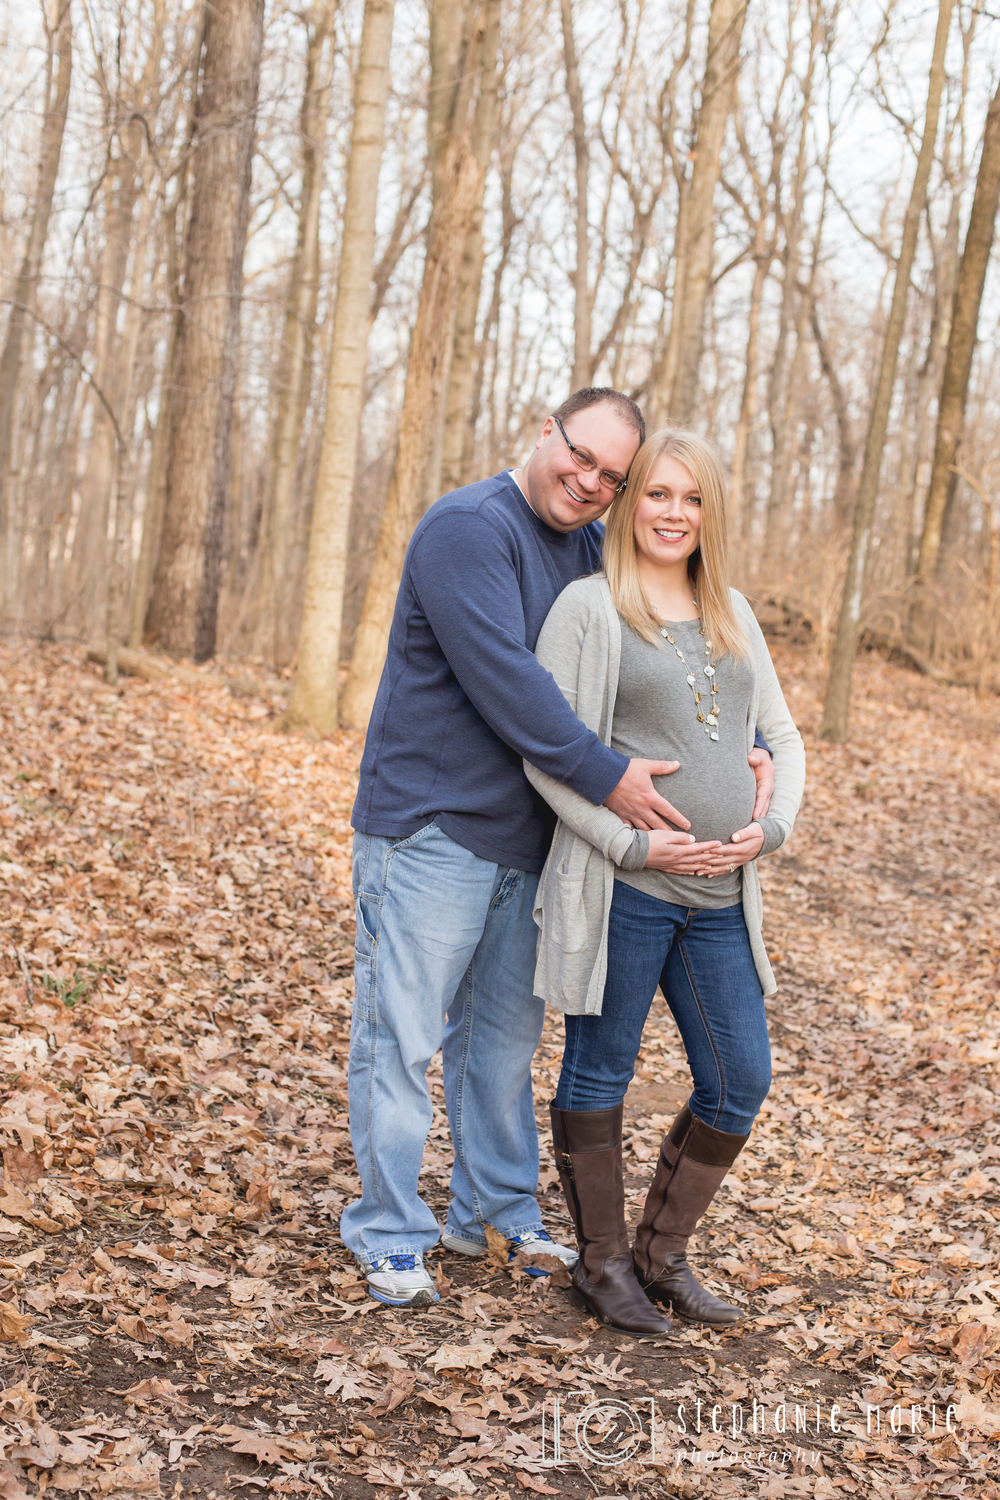 Carly's Maternity Session-15.jpg